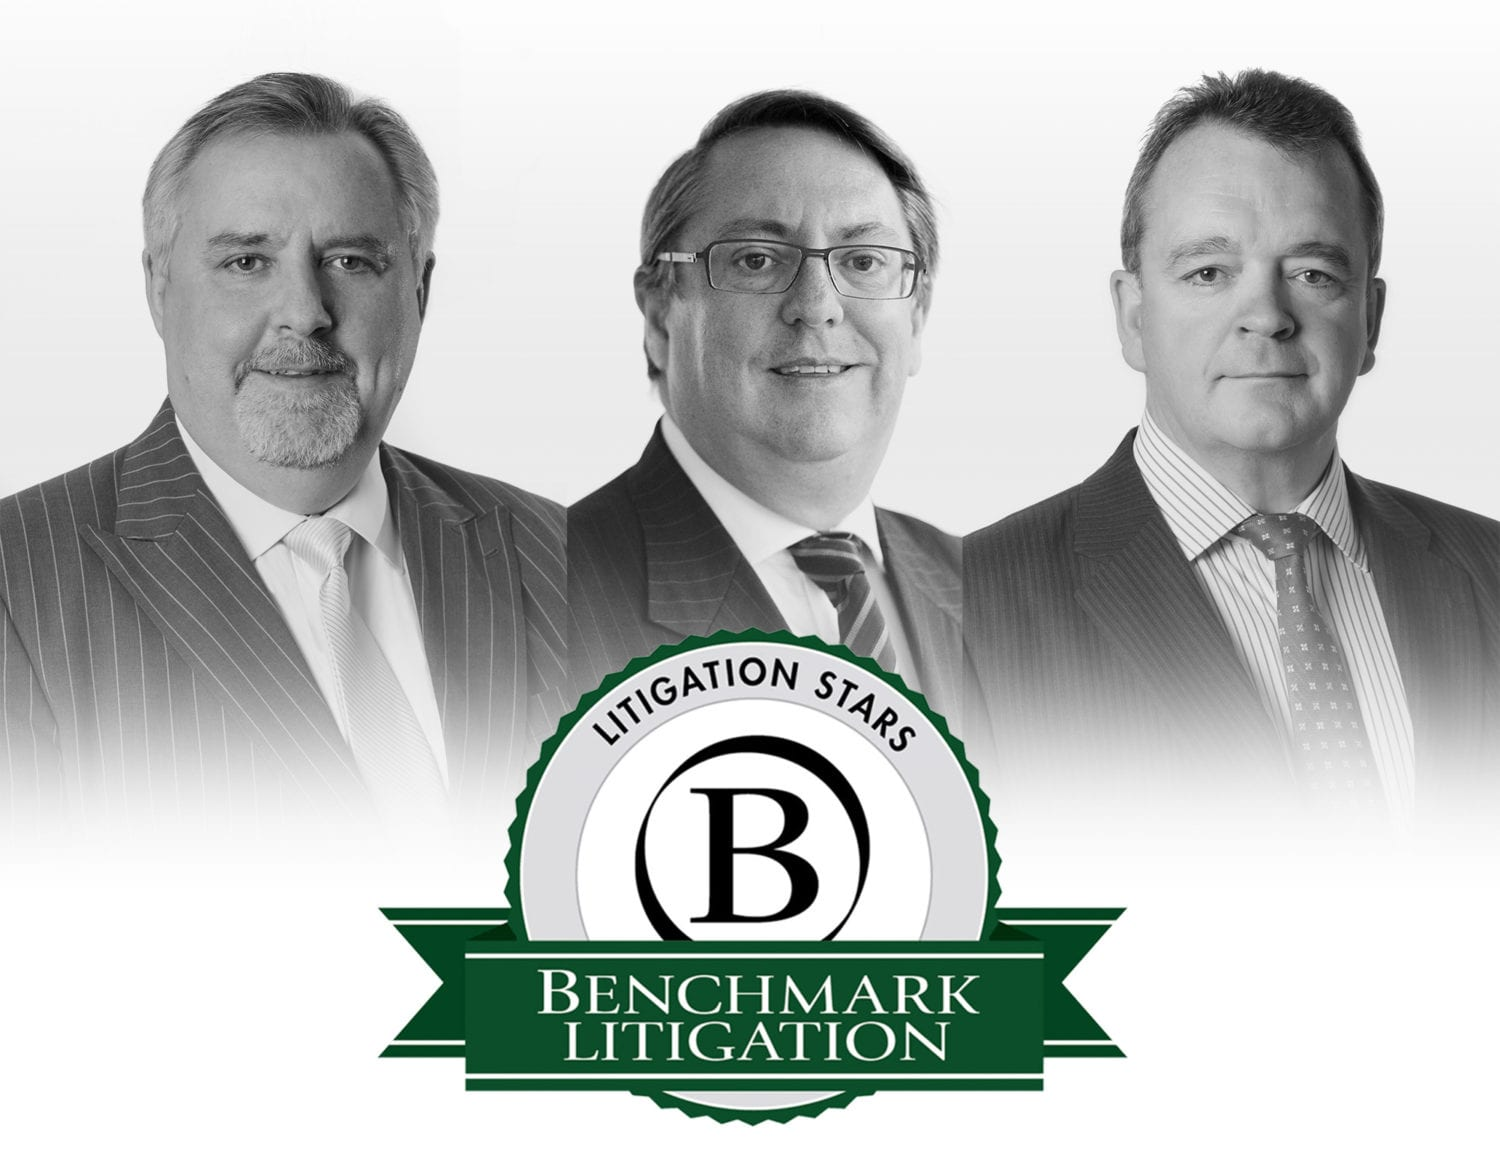 Benchmark Litigation Dispute Resolution Stars: Ian De Witt, Robin Darton and Jeff Lane